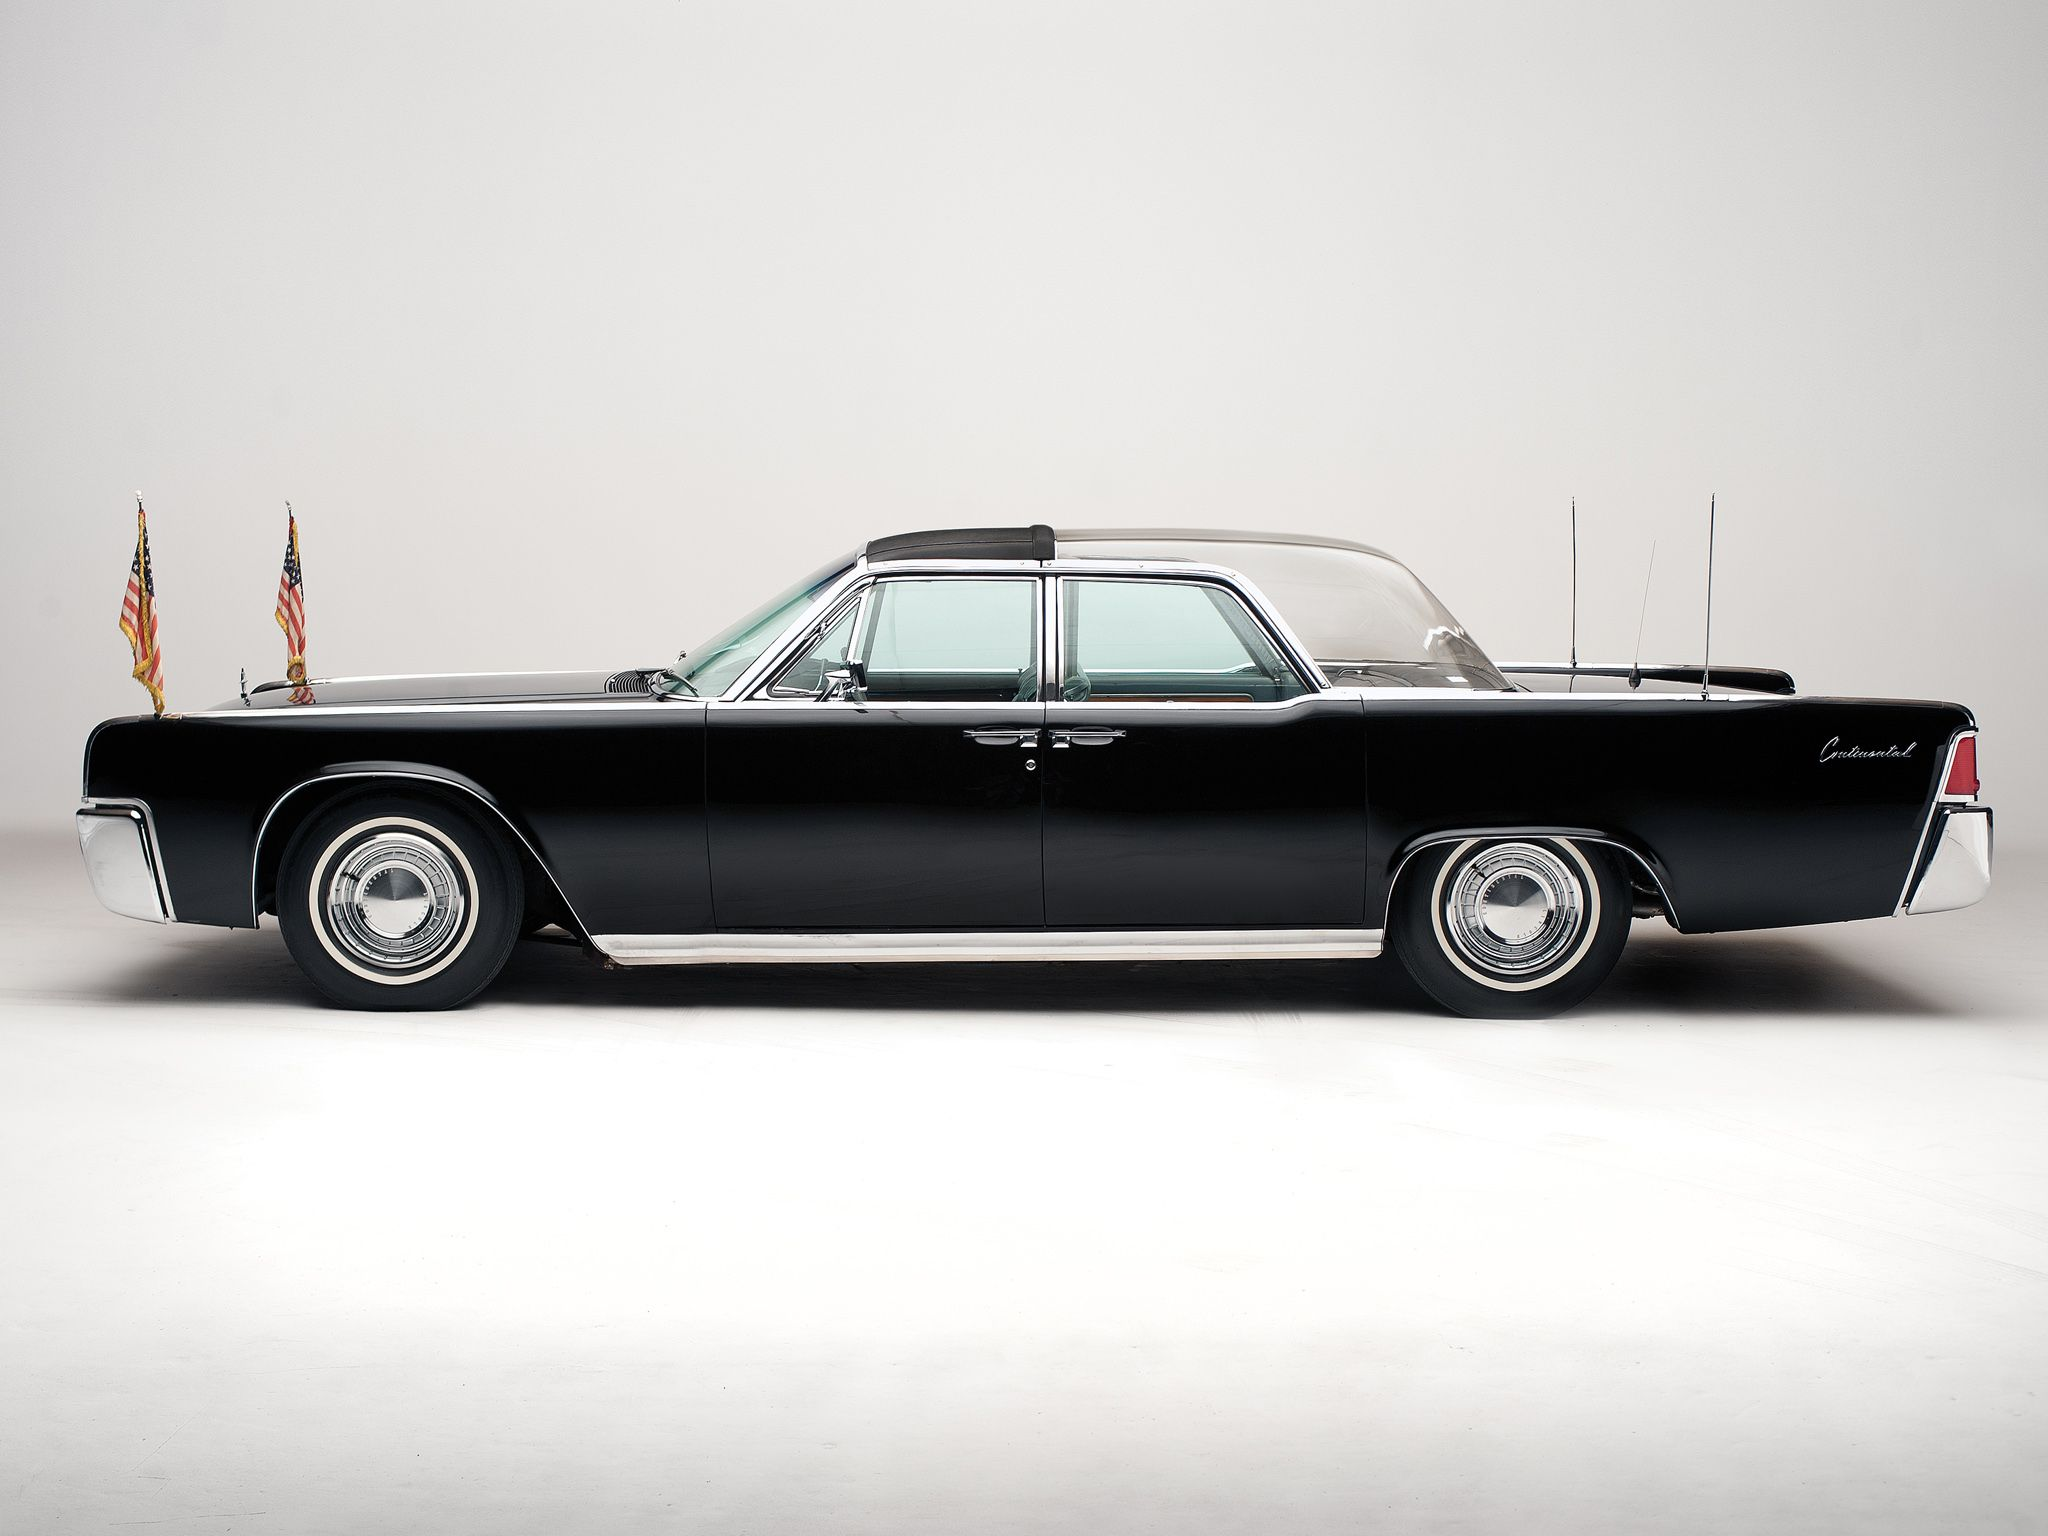 Lincoln continental bubbletop kennedy limousine 1962